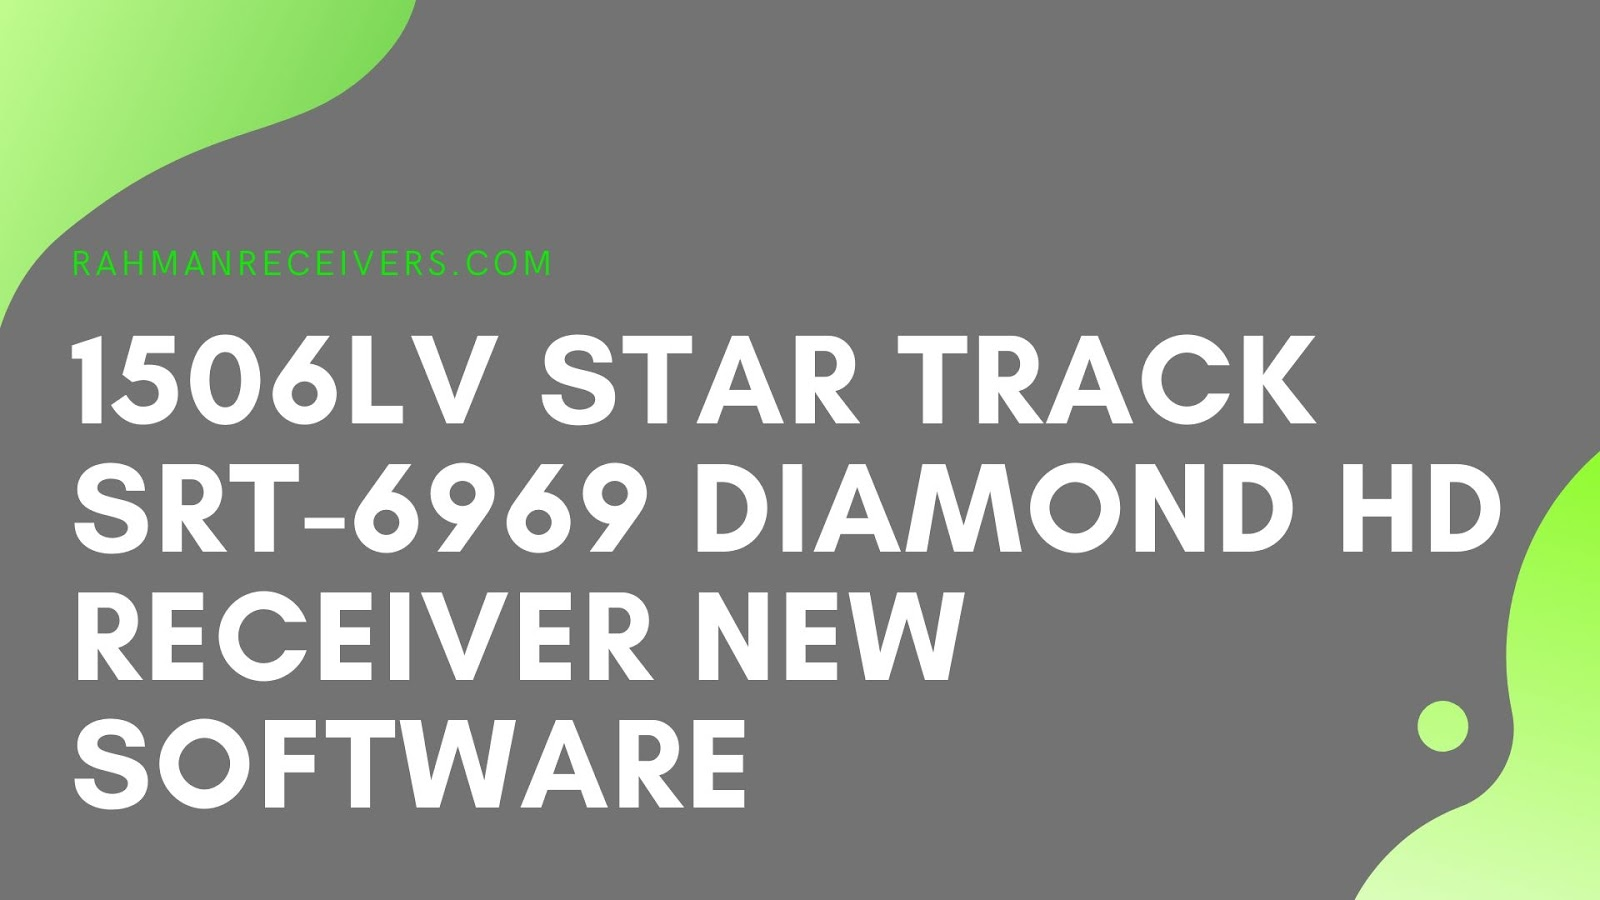 1506LV STAR TRACK SRT-6969 DIAMOND HD RECEIVER NEW SOFTWARE